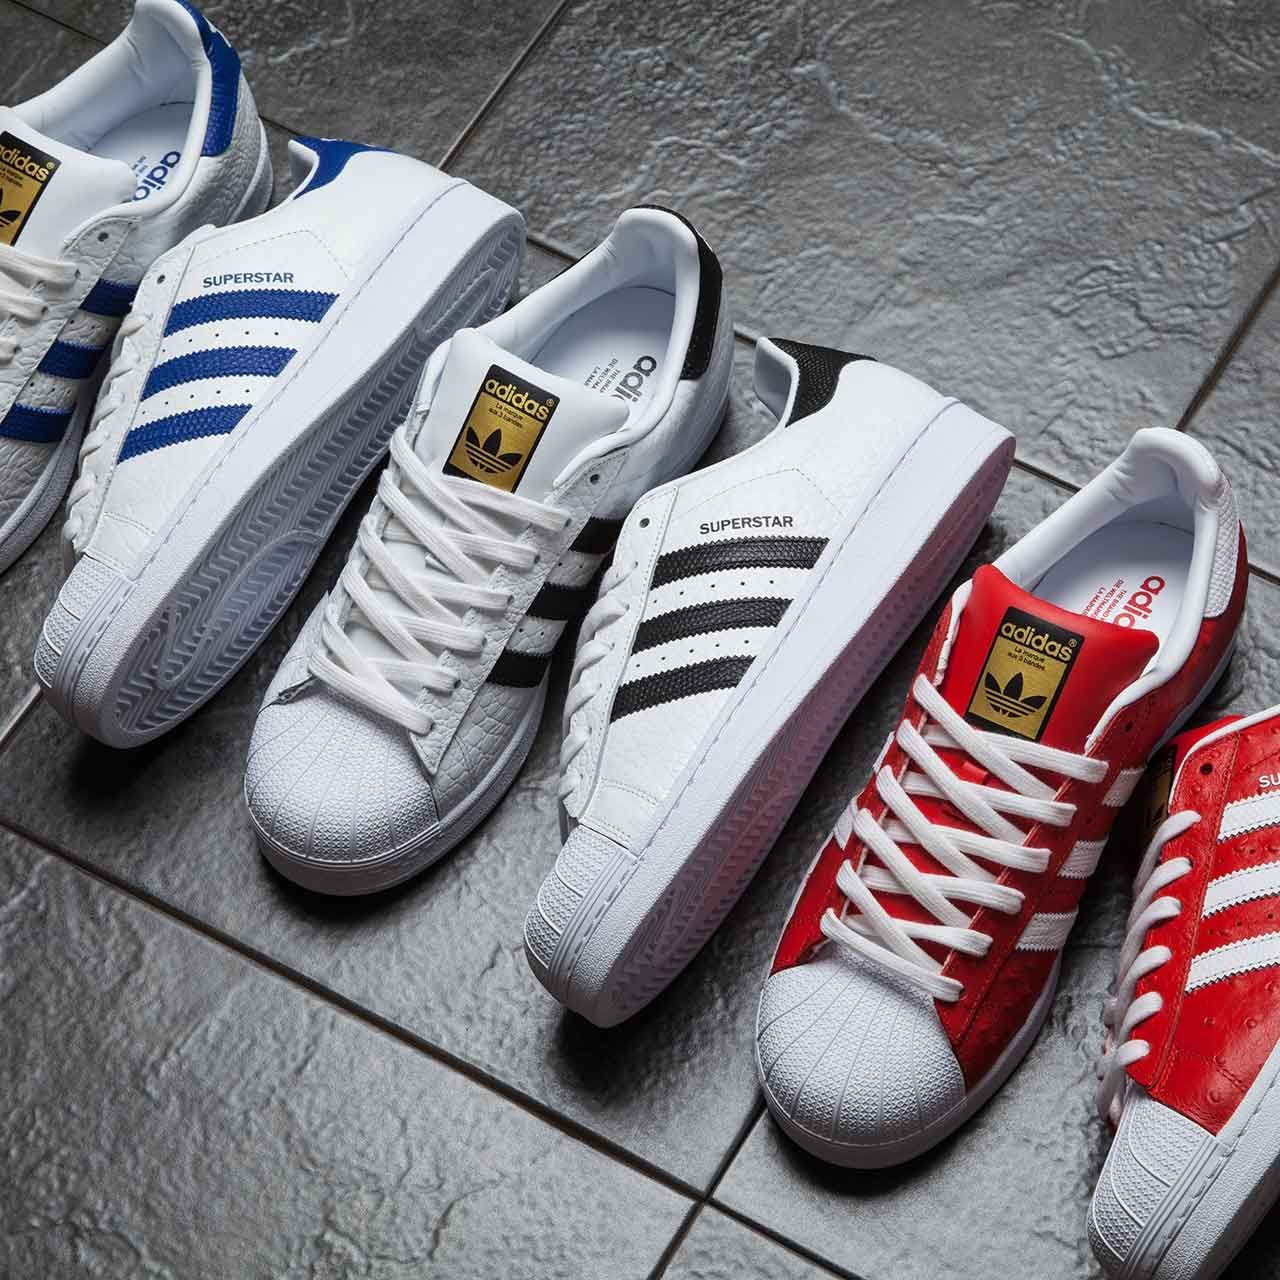 The classic superstar with a twist! The adidas Originals